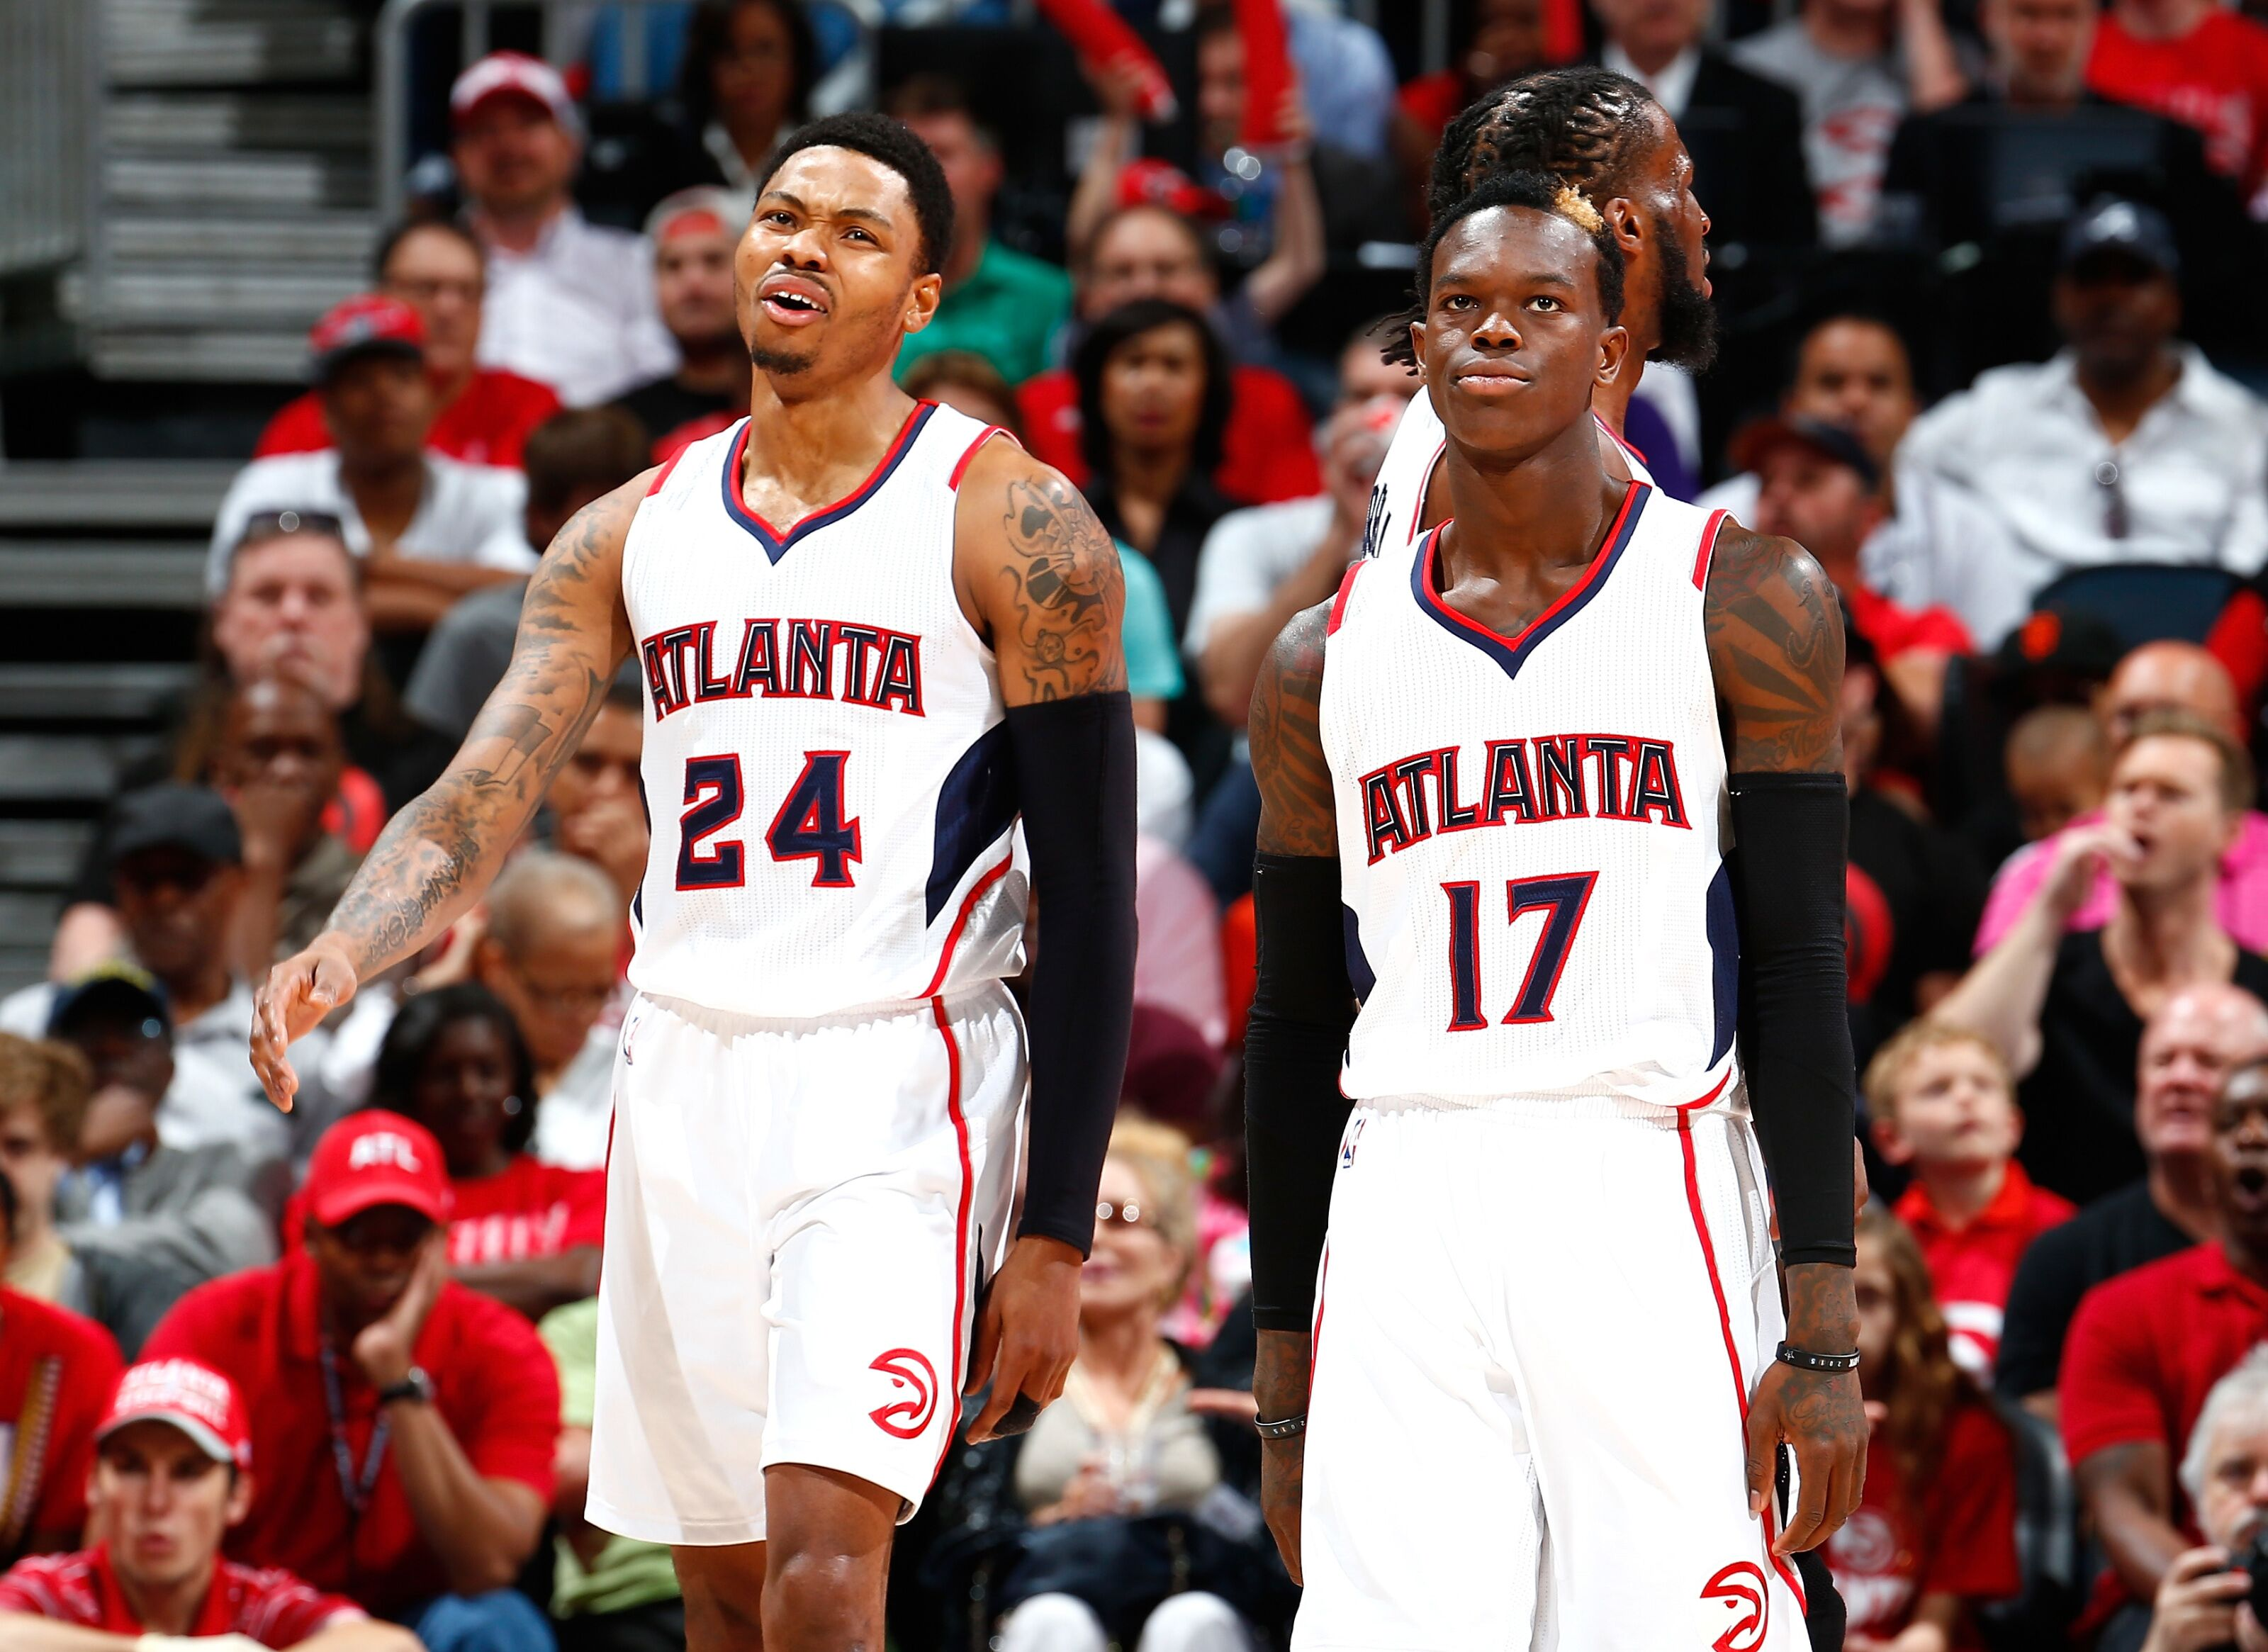 atlanta hawks free agency: a look at the roster before the frenzy